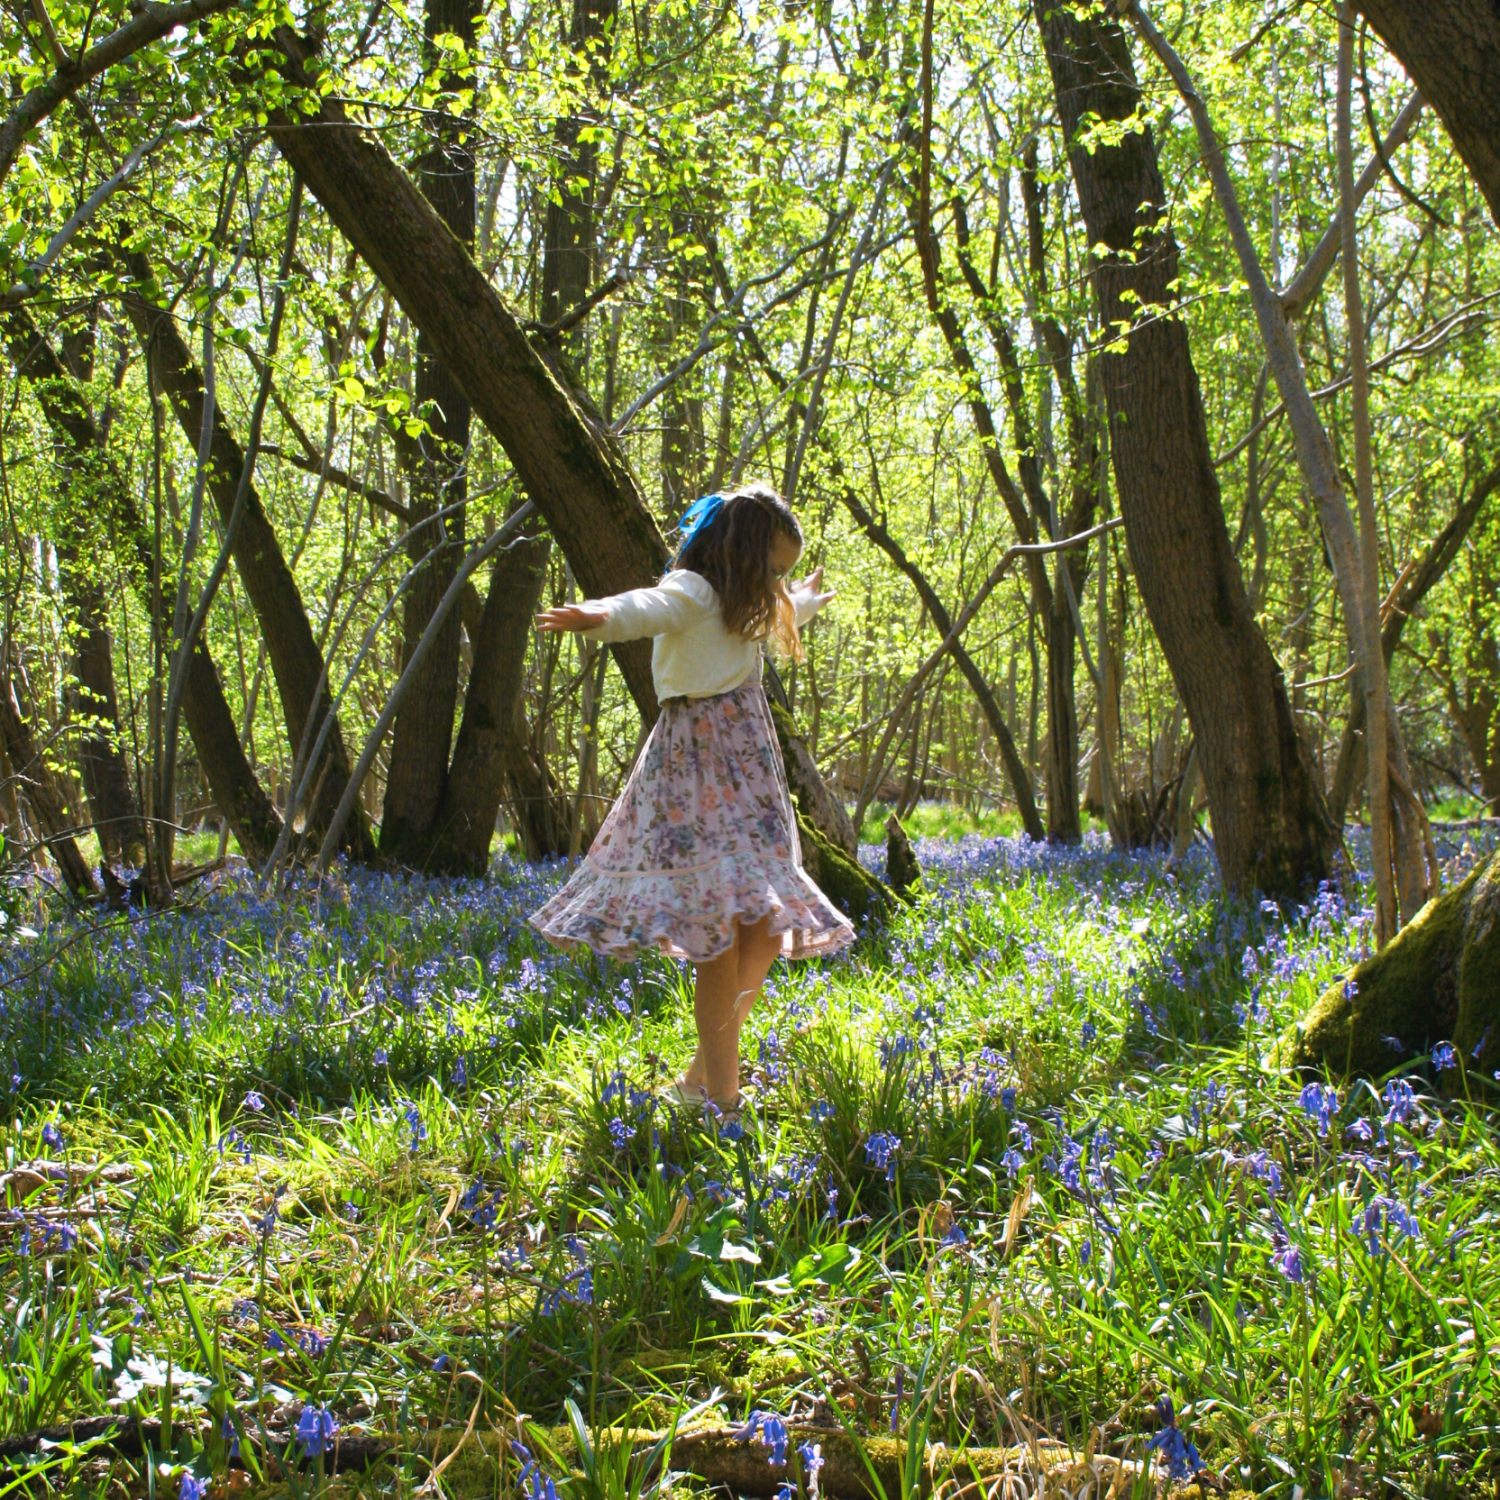 Child playing in a bluebell forest